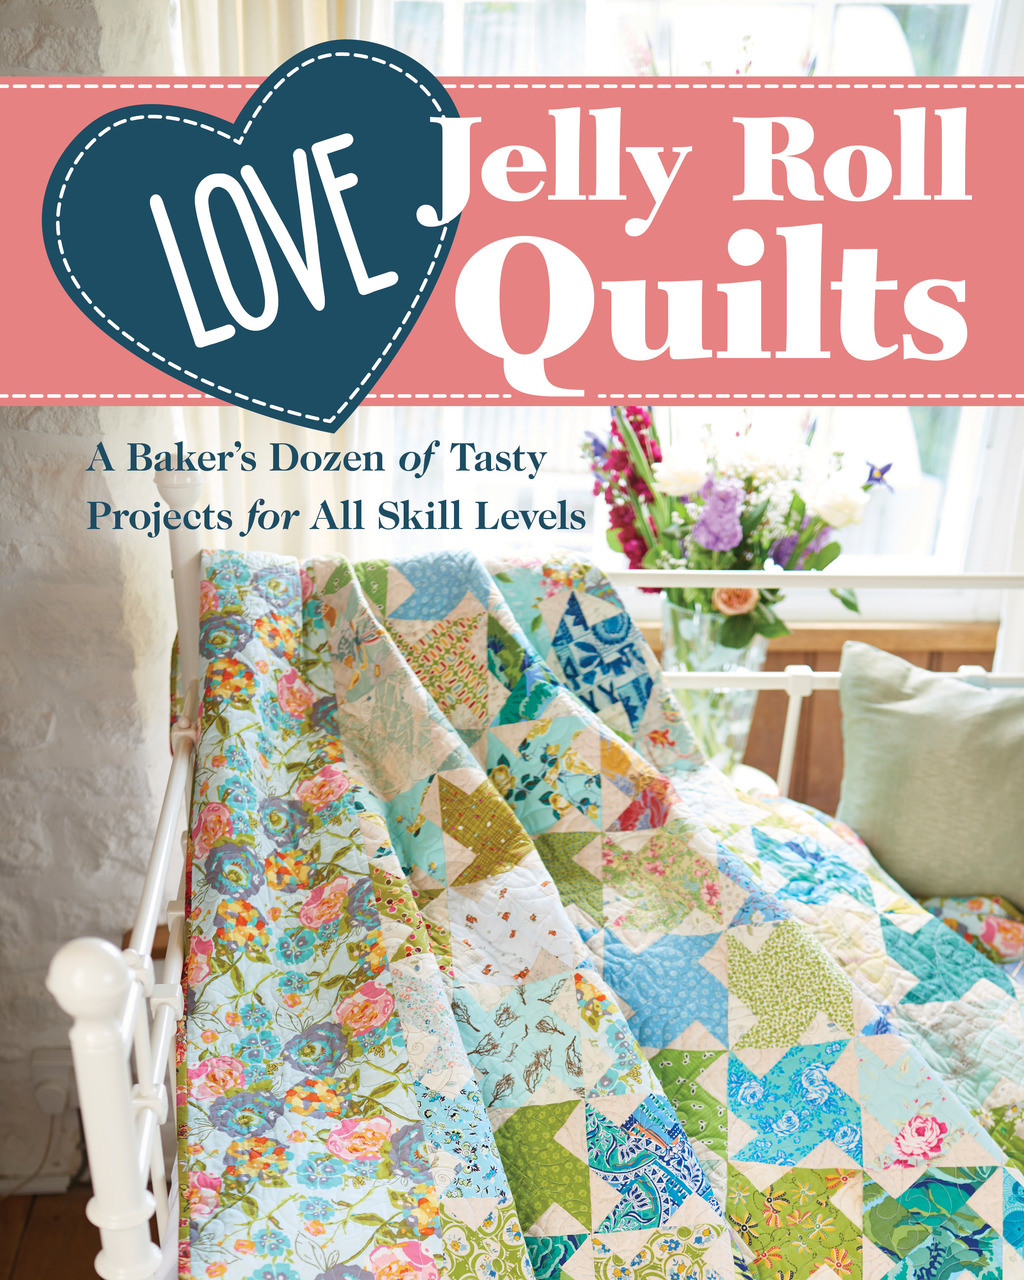 Love Jelly Roll Quilts Cover